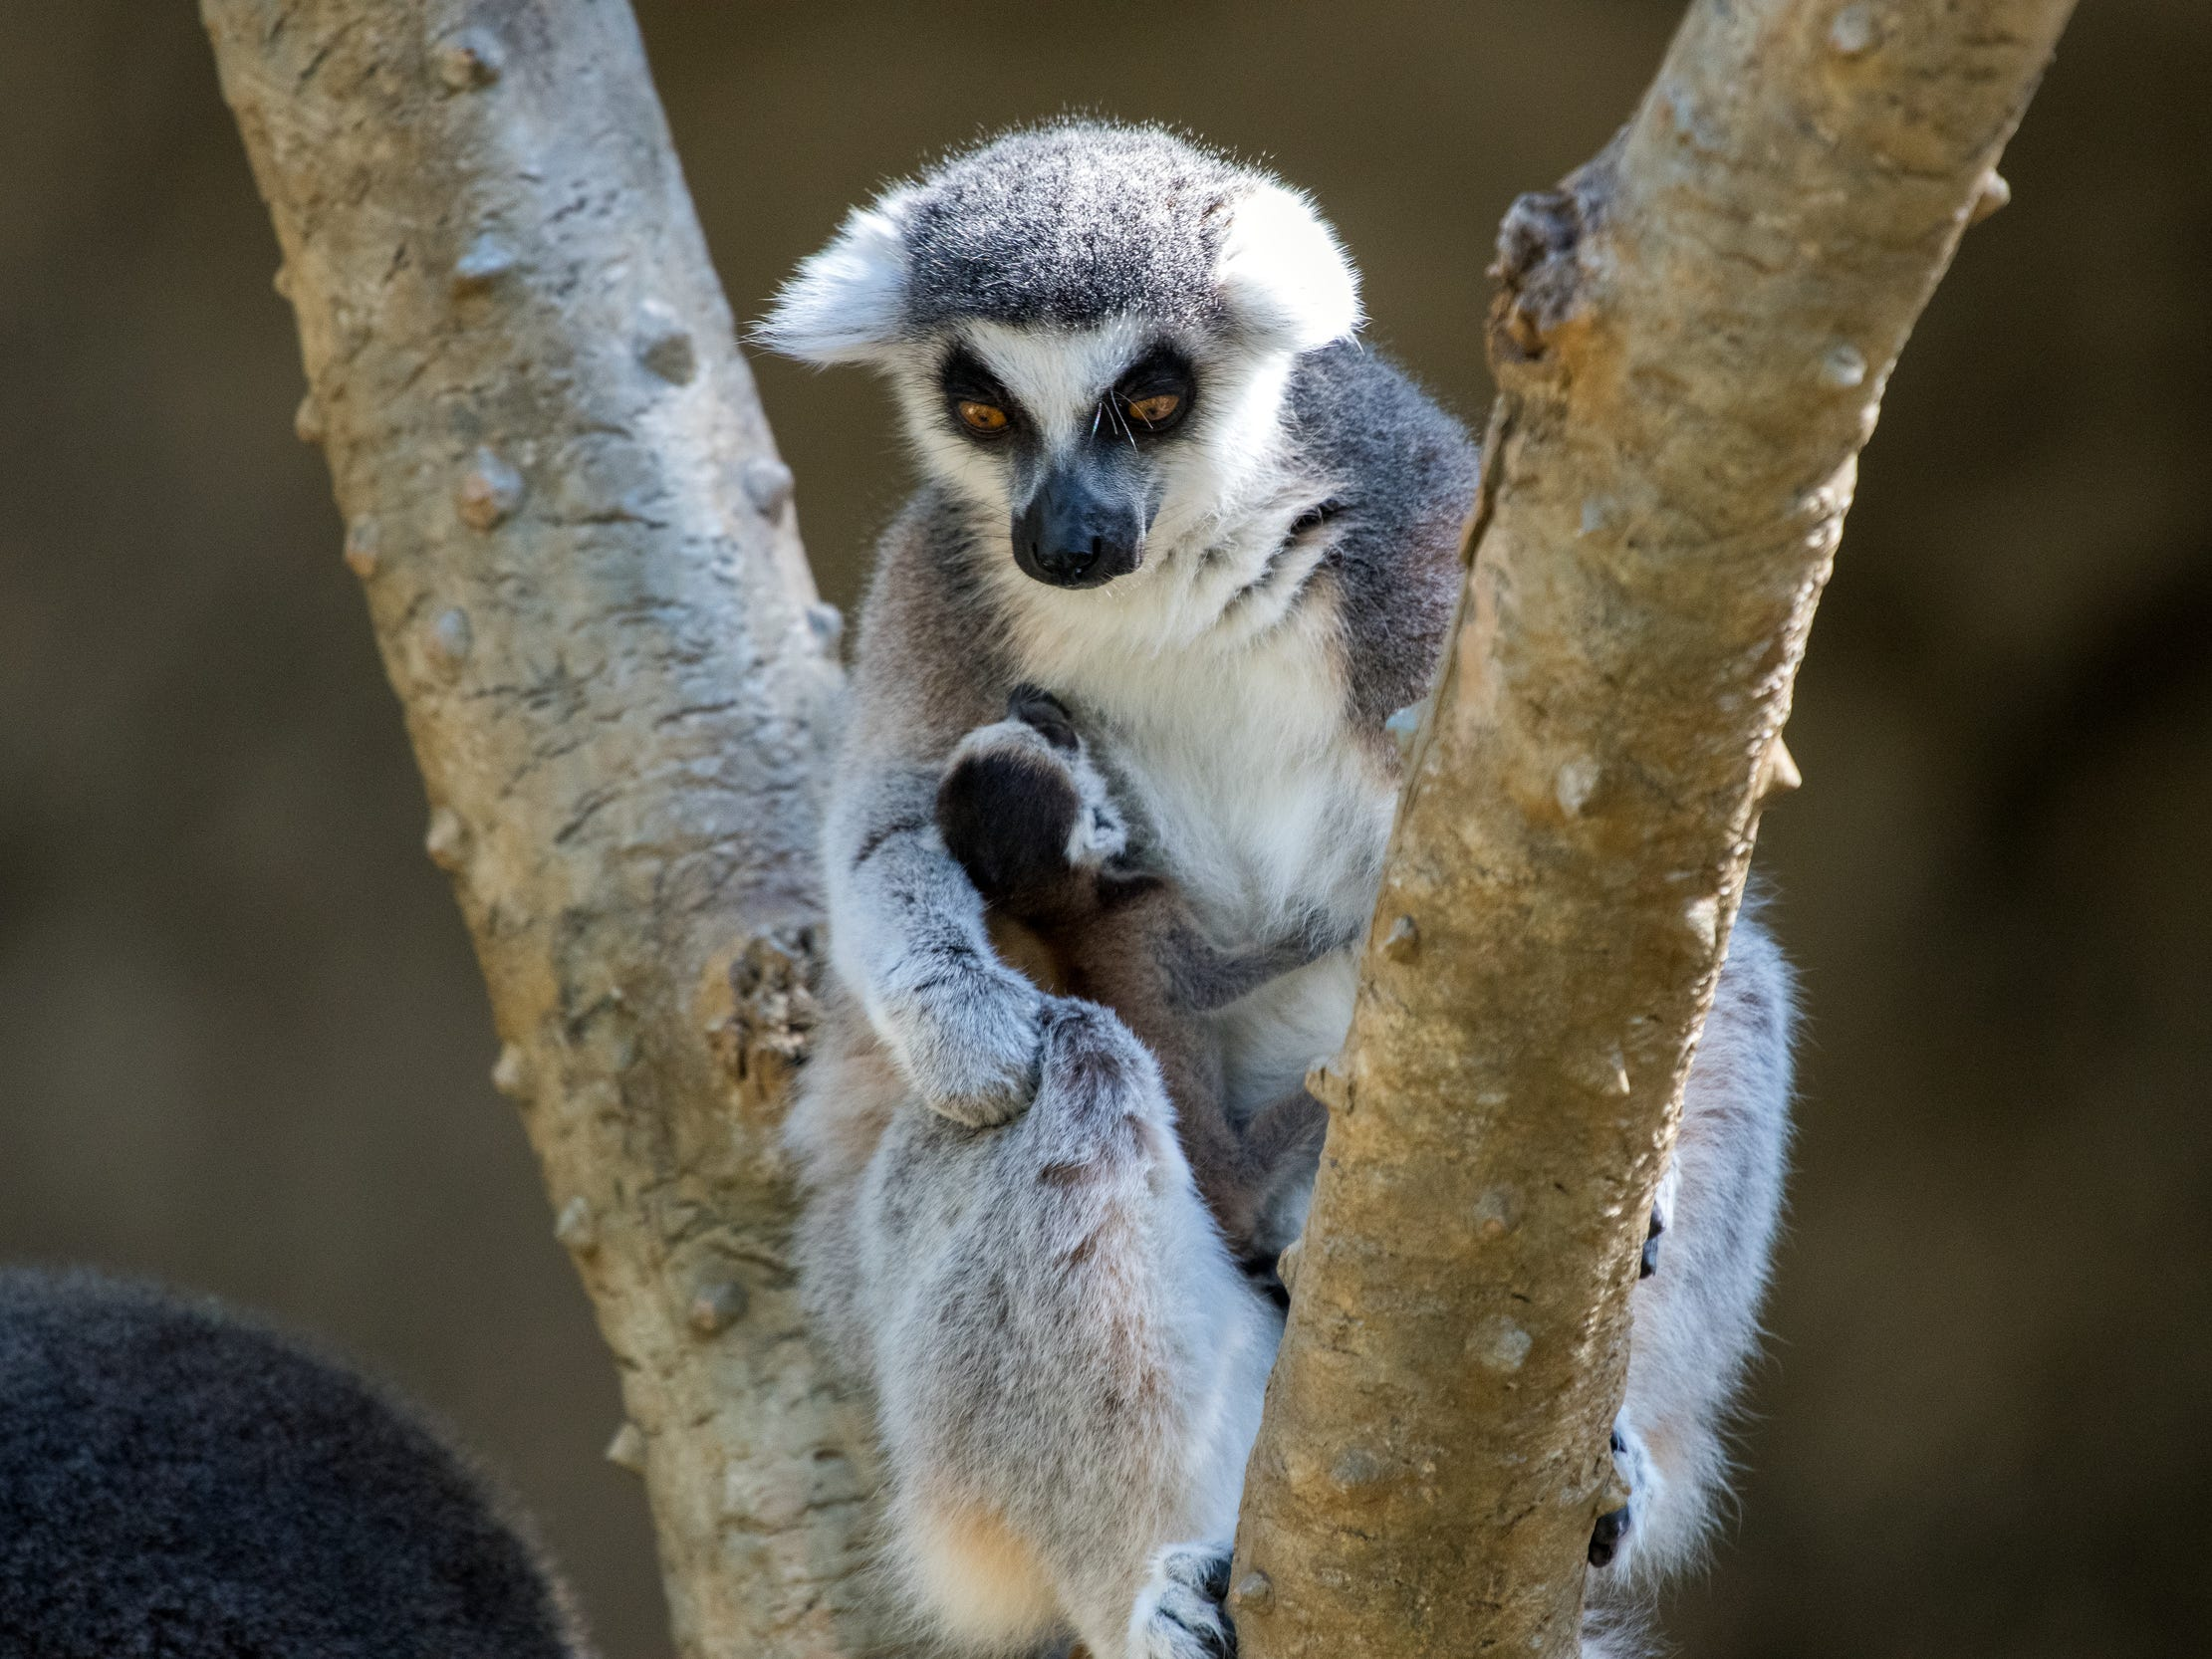 A baby ring-tailed lemur, born on Jan. 21, looks up at mom. The two can be seen in the Wortham World of Primates at the Houston Zoo.